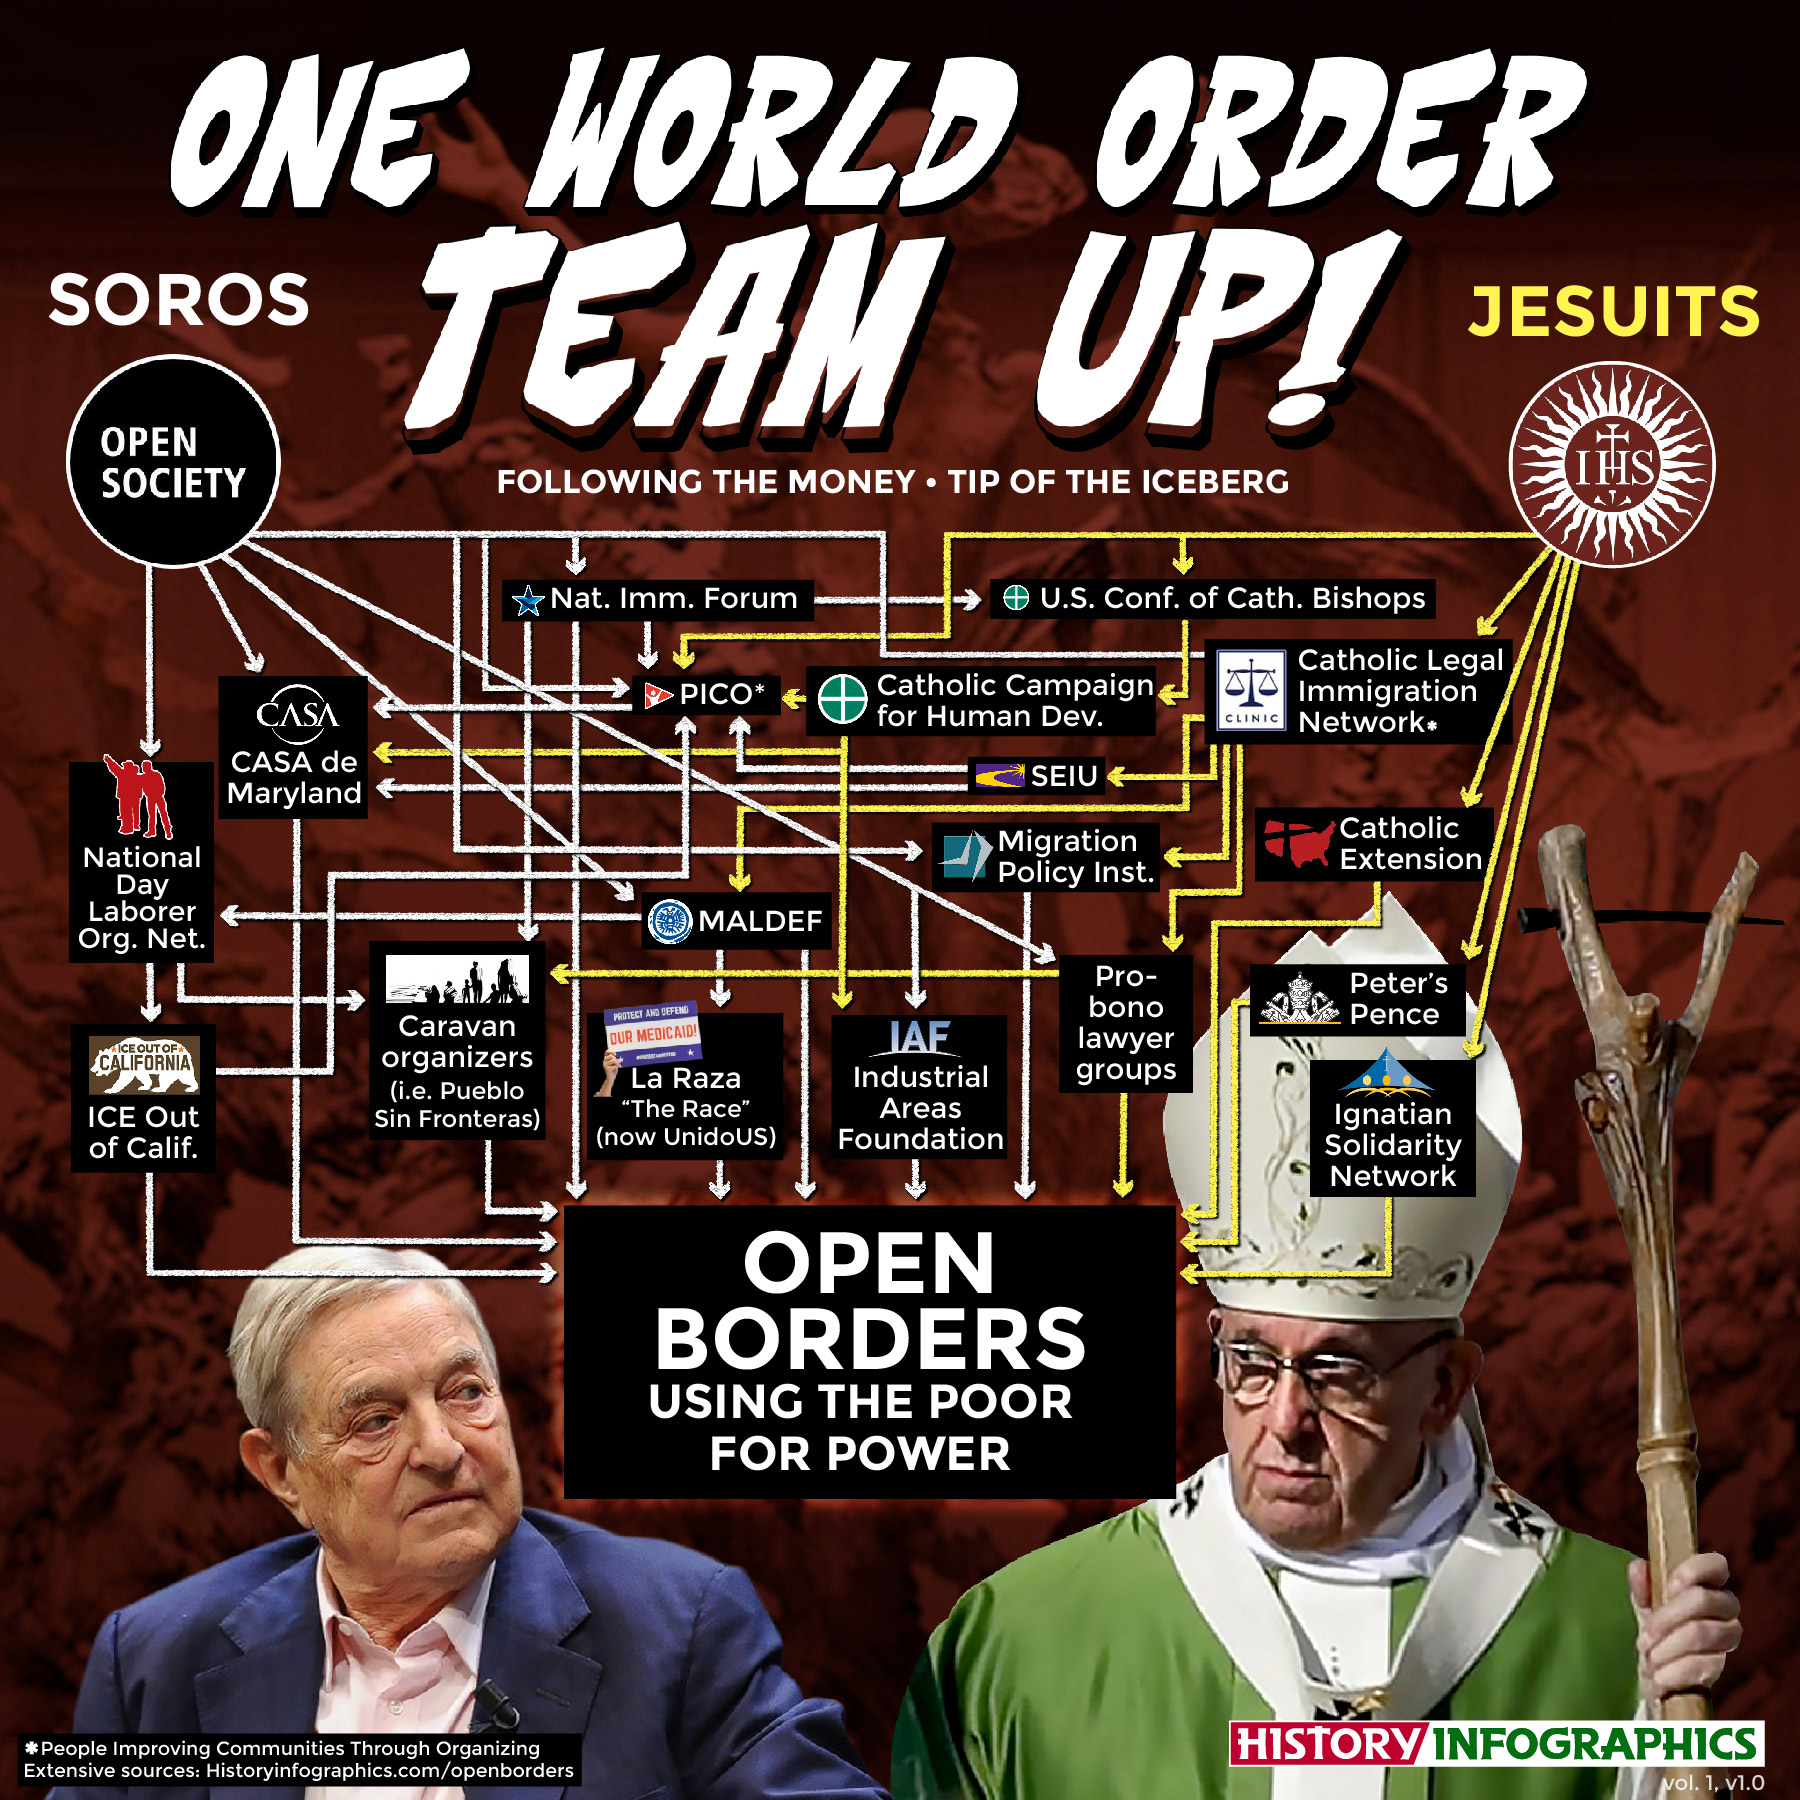 Non-profits helping illegal immigration and open borders into the United States is funded by both George Soros and Jesuit-controlled Catholic organizations.